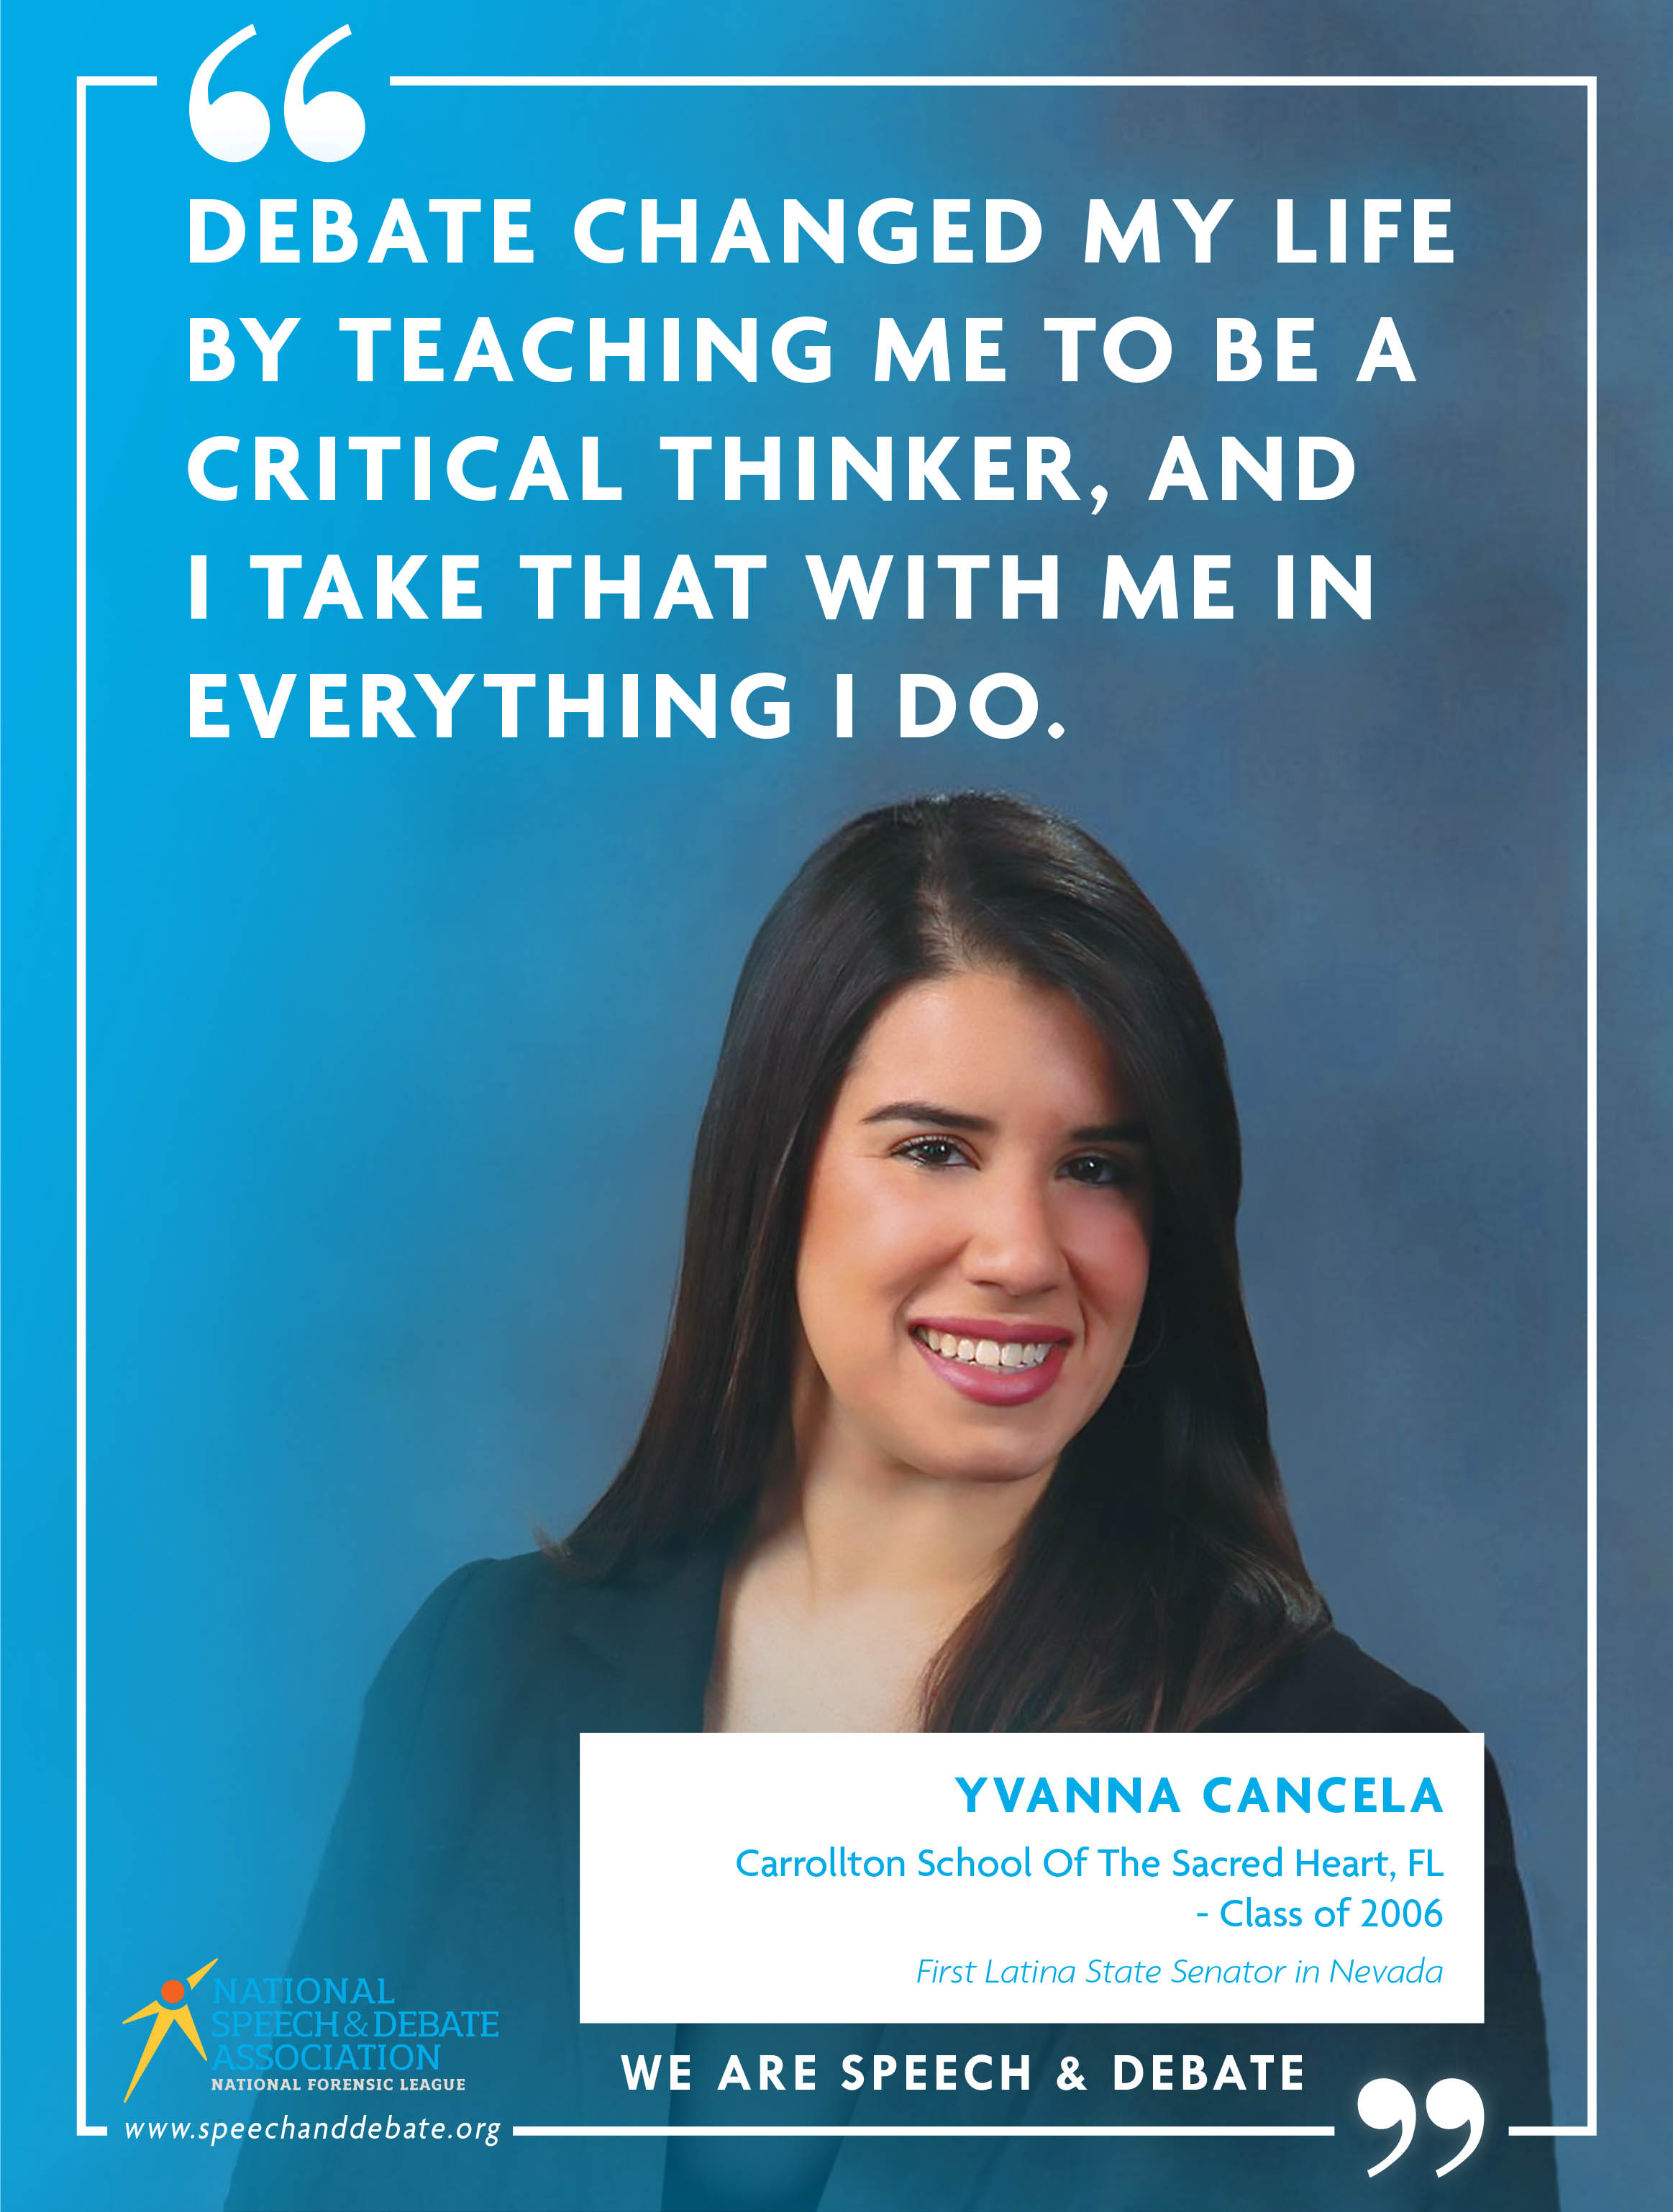 """DEBATE CHANGED MY LIFE BY TEACHING ME TO BE A CRITICAL THINKER, AND I TAKE THAT WITH ME IN EVERYTHING I DO."" - Yvanna Cancela"